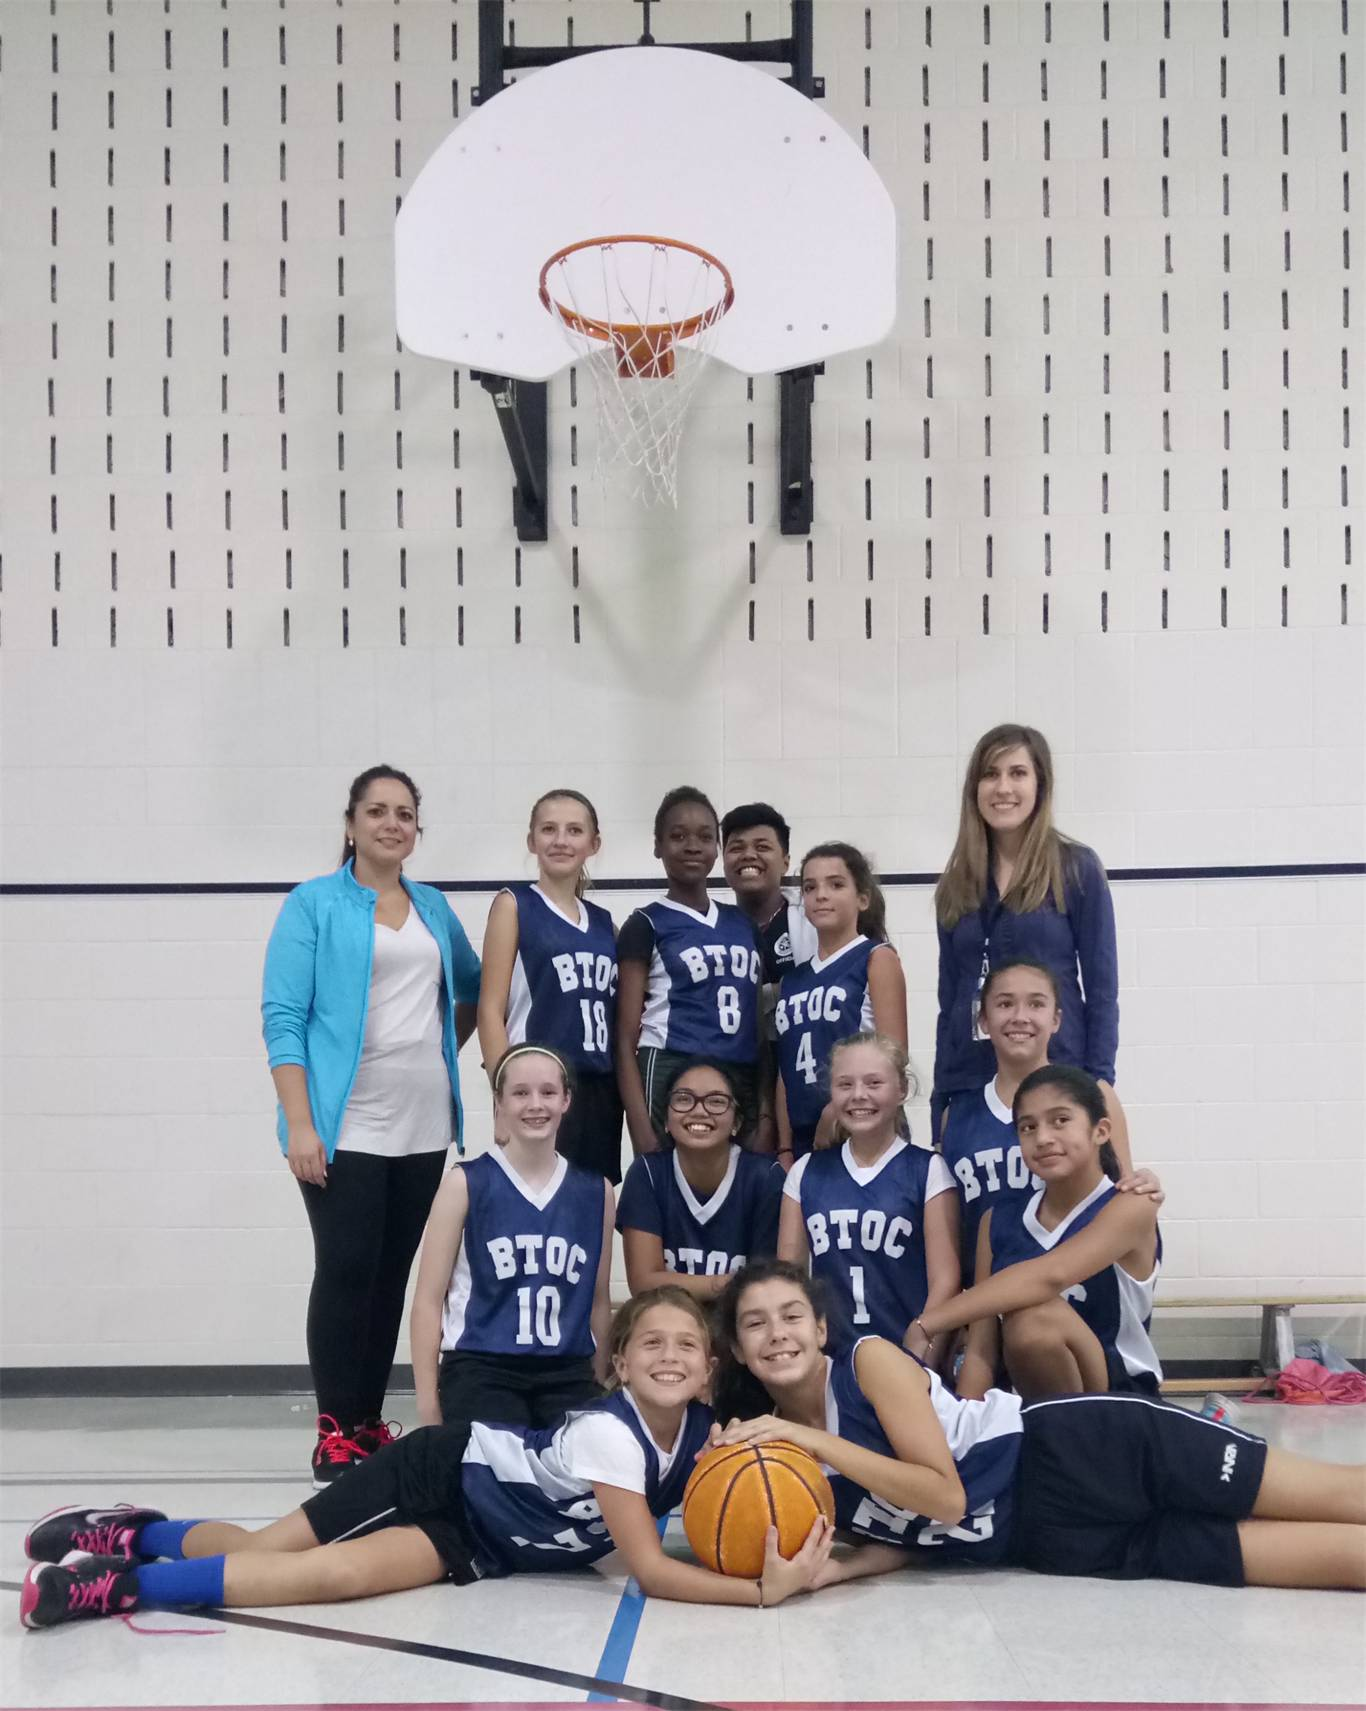 Sr. Girls Basketball Team